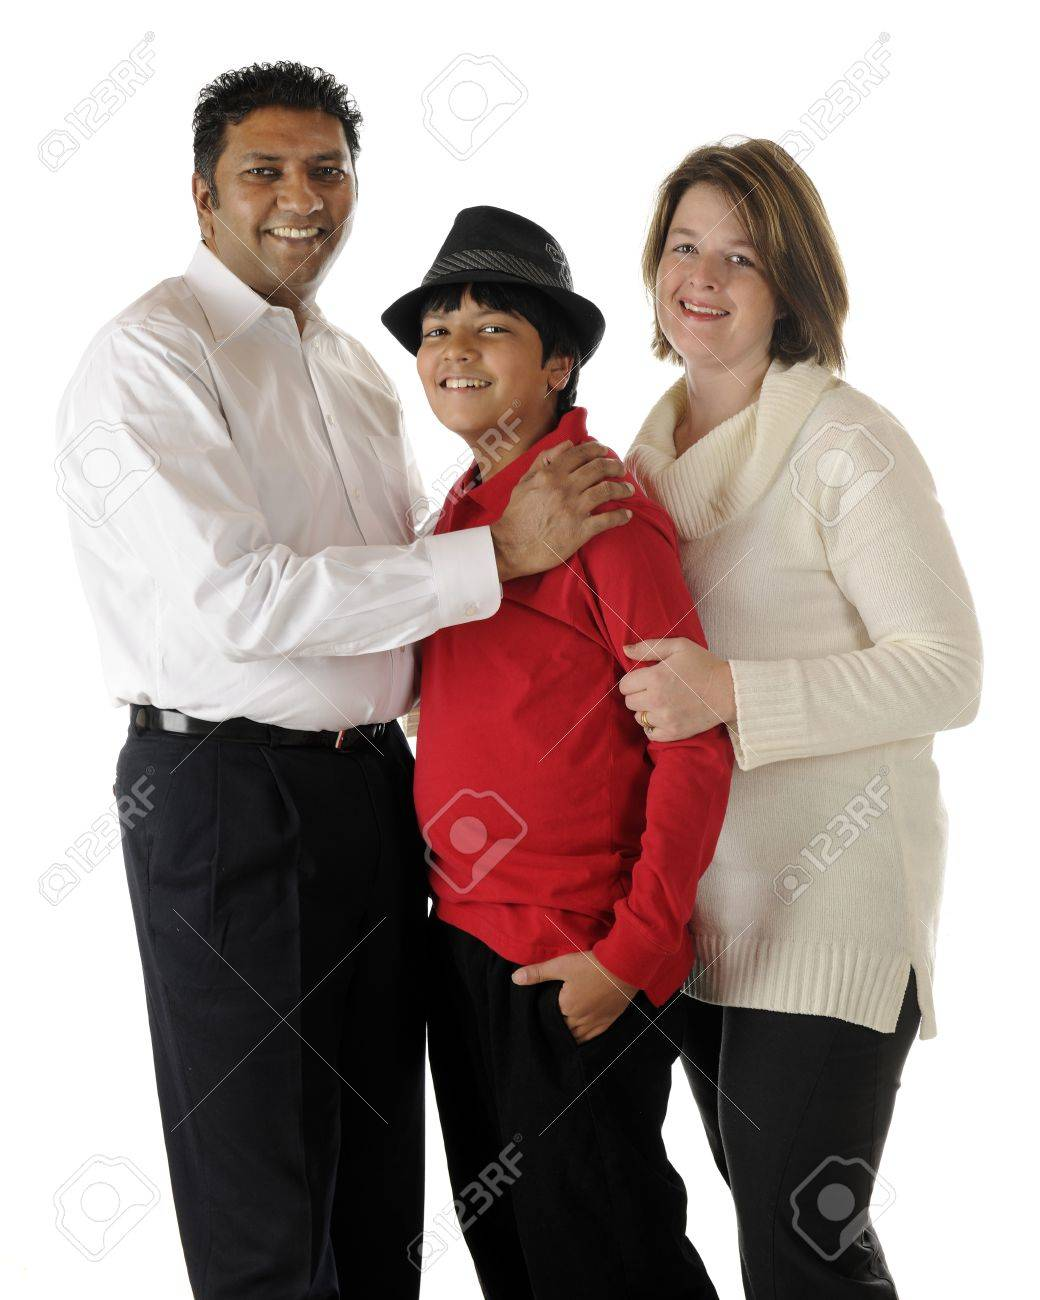 Standing portrait of a happy biracial family of three -- an Asian Indian dad, caucasian mom and their preteen son   On a white background Stock Photo - 17165328